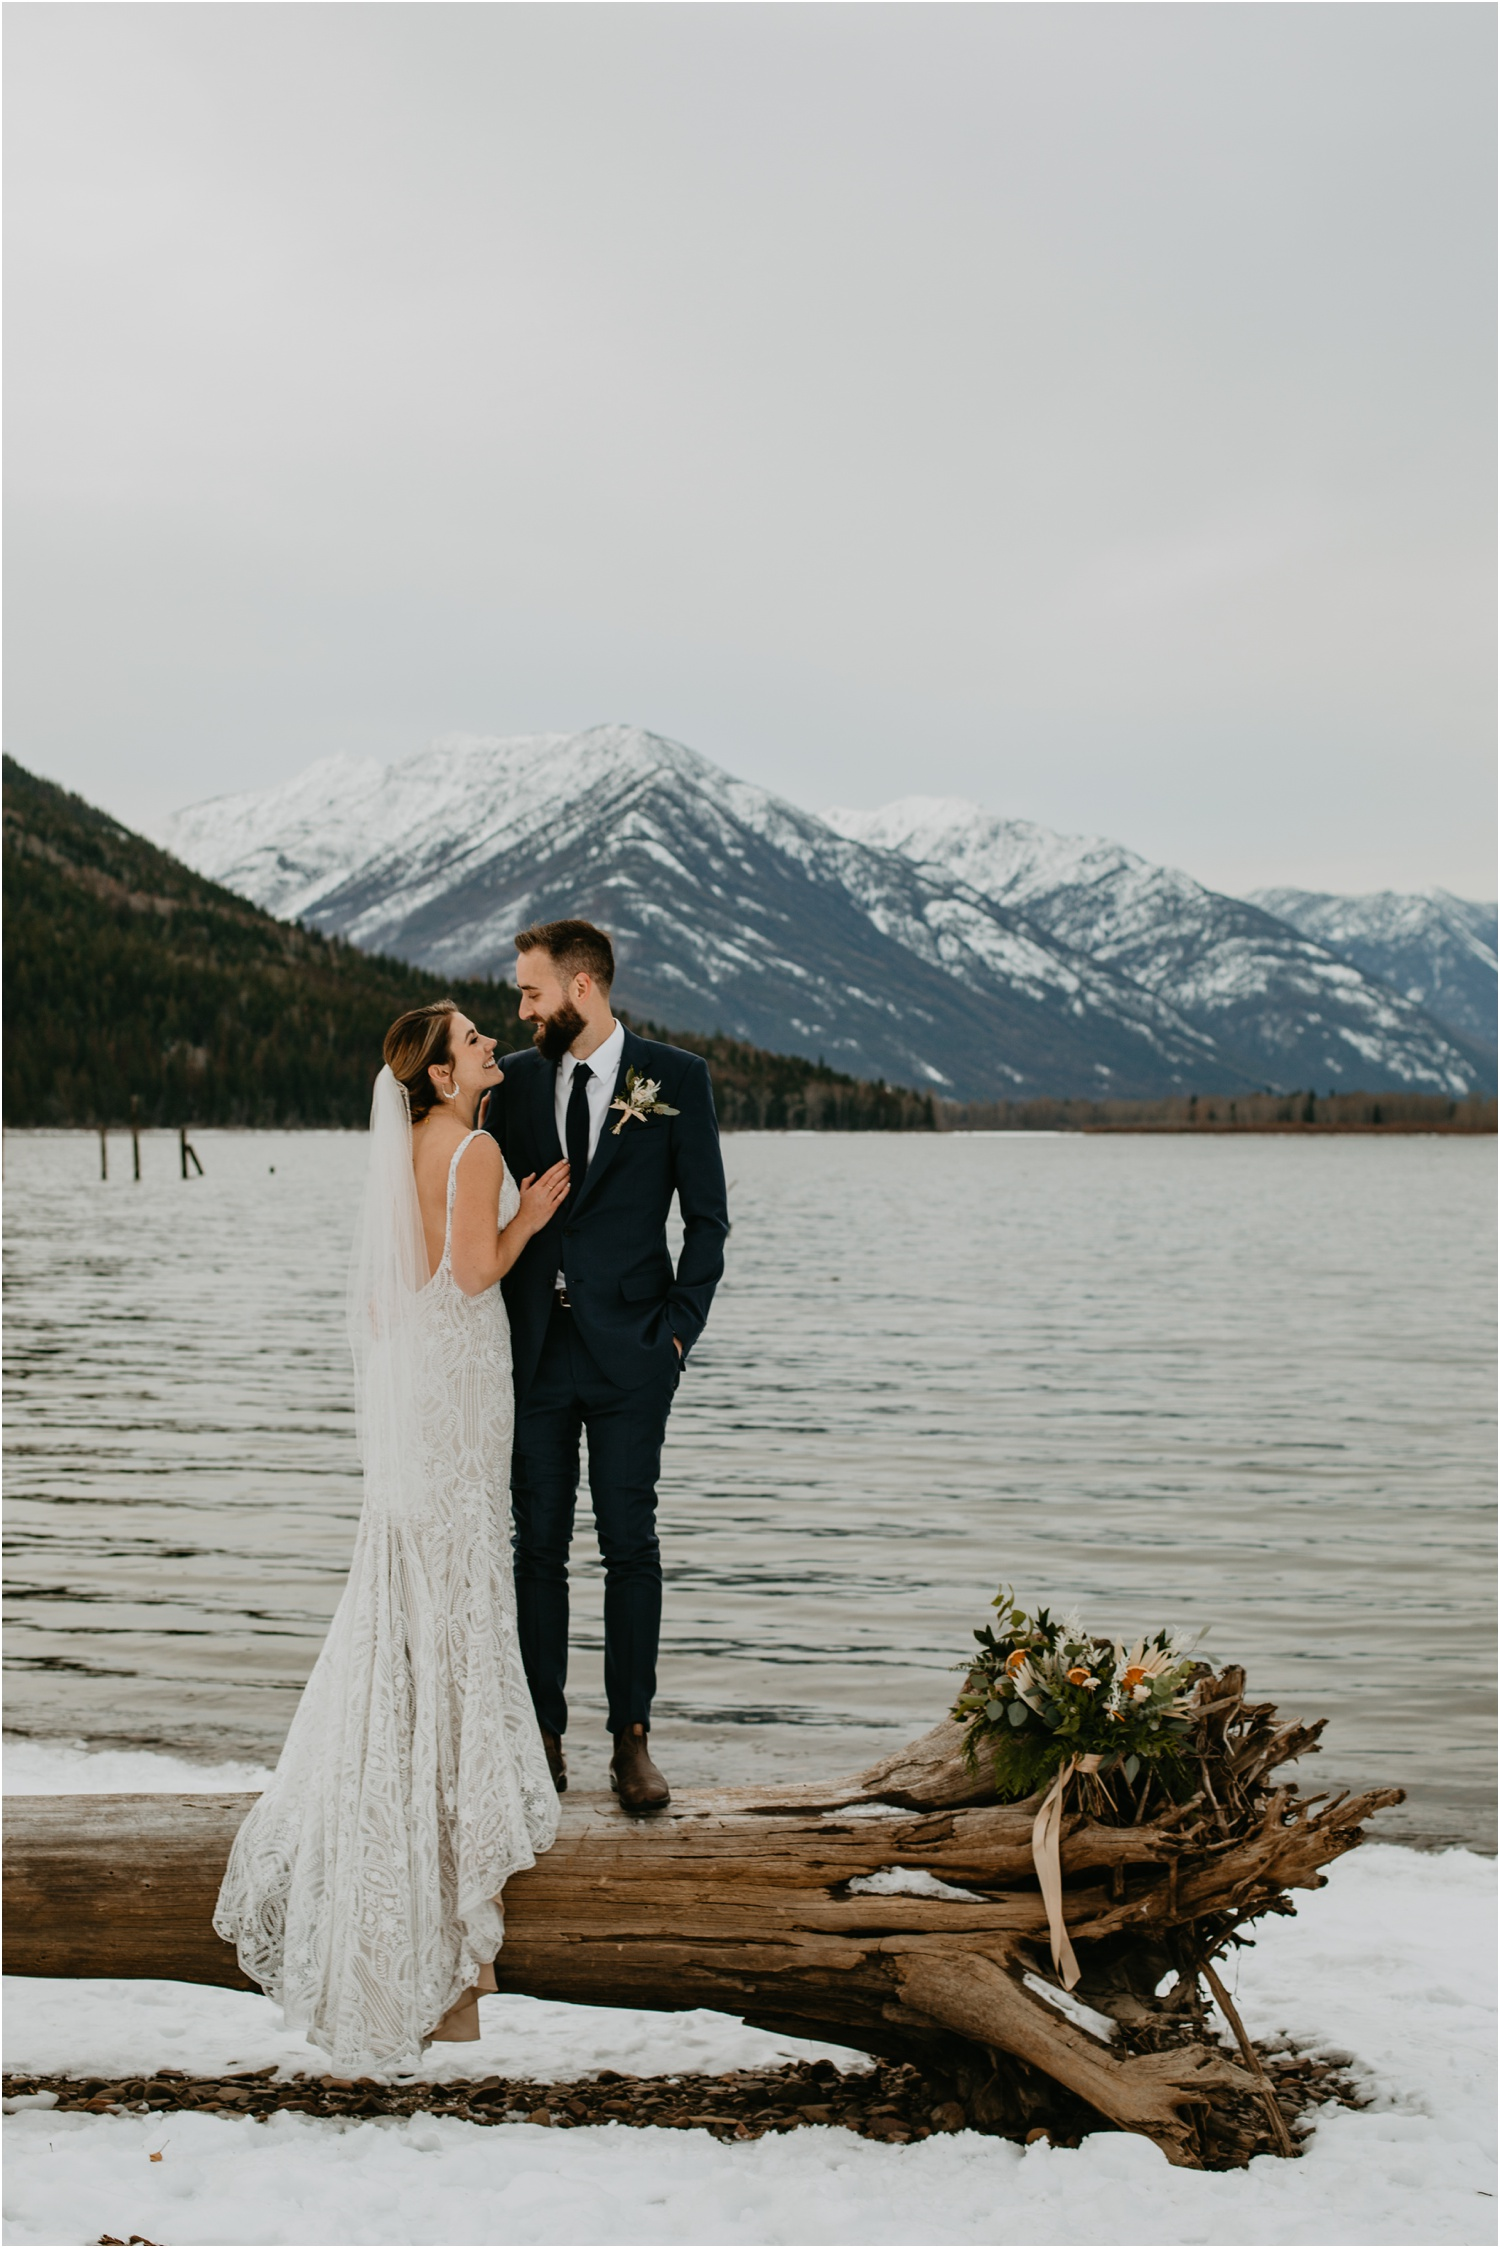 st mary lake elopement wedding, kimberley wedding photography, kimberley bc wedding, kimberley bc wedding photographer, cranbrook wedding, cranbrook elopement, cranbrook elopement photographer, kimberley bc elopement, st mary lake elopement wedding photographer, st mary lake ceremony, st mary lake wedding photographer, kimberley bc winter wedding, st mary lake winter wedding, st mary lake wedding photography, mjs florals, the romantiks, kootenay winter wedding